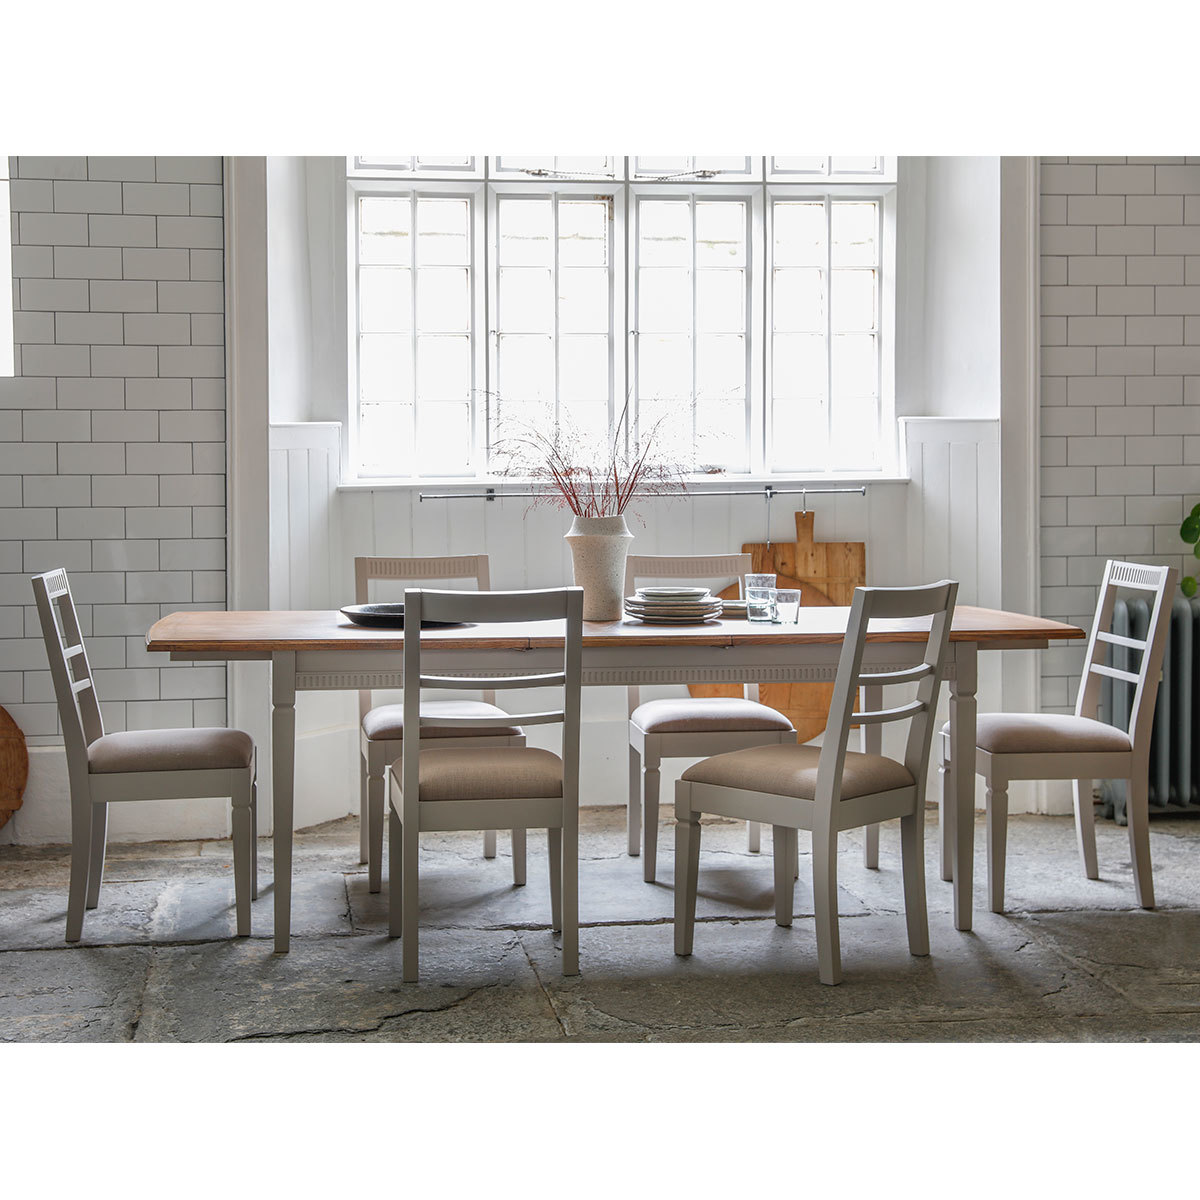 Bronte Painted Taupe Extending Dining Room Table 6 Chairs Taupe Costco Uk